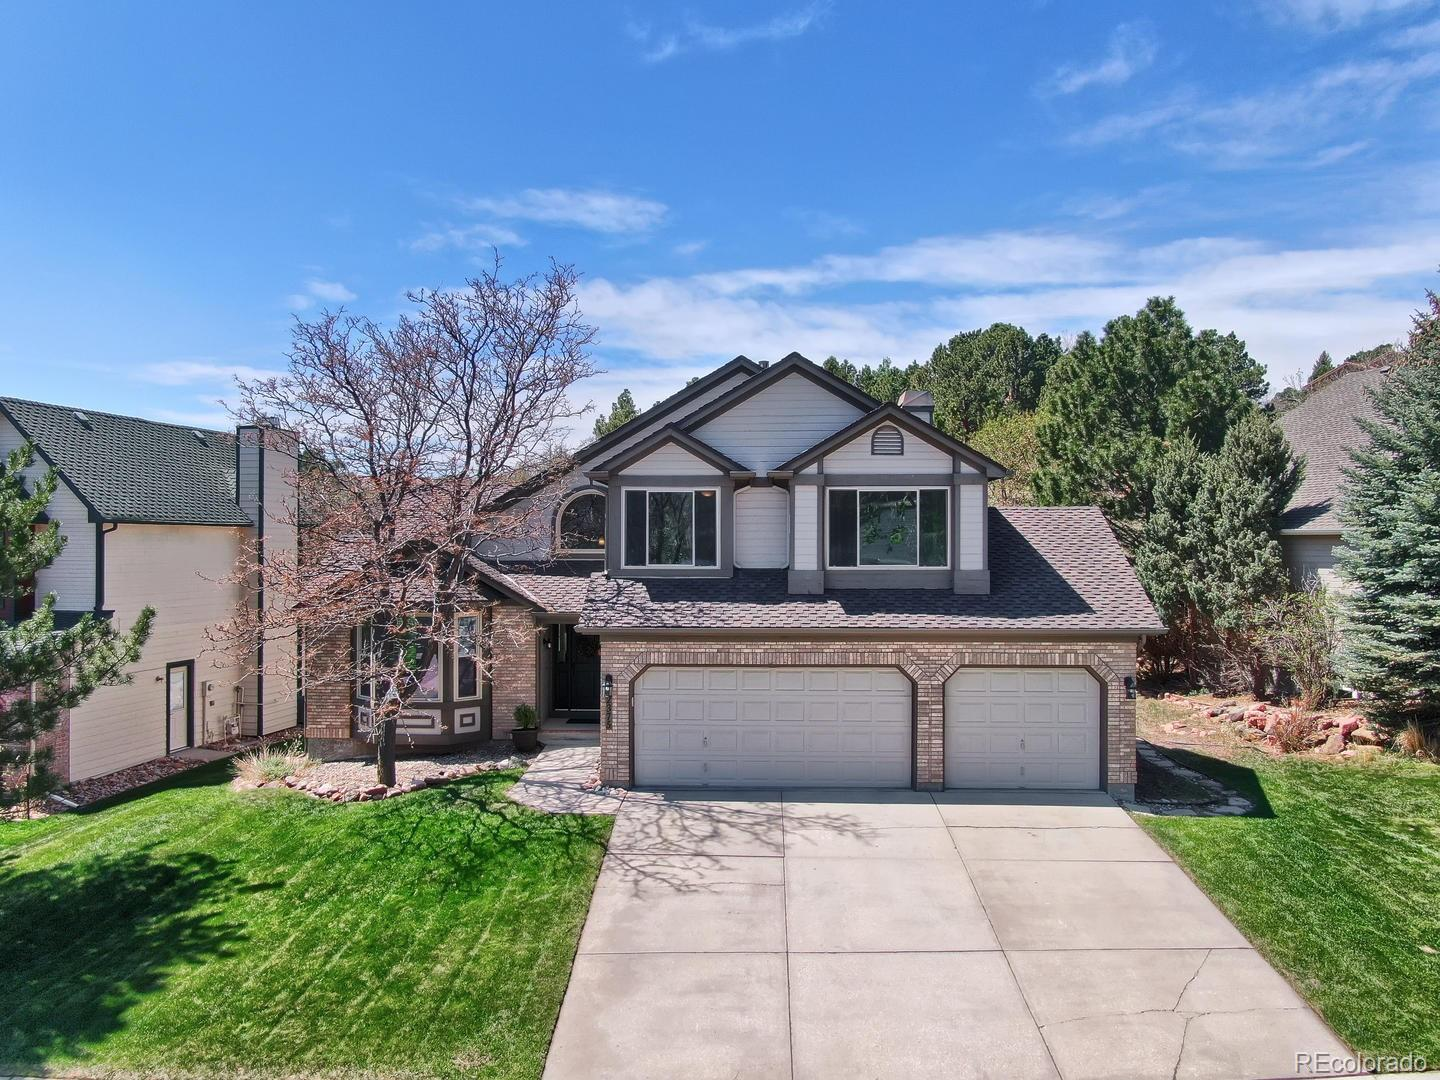 2375 Kittridge Avenue, Colorado Springs, CO 80919 - Colorado Springs, CO real estate listing